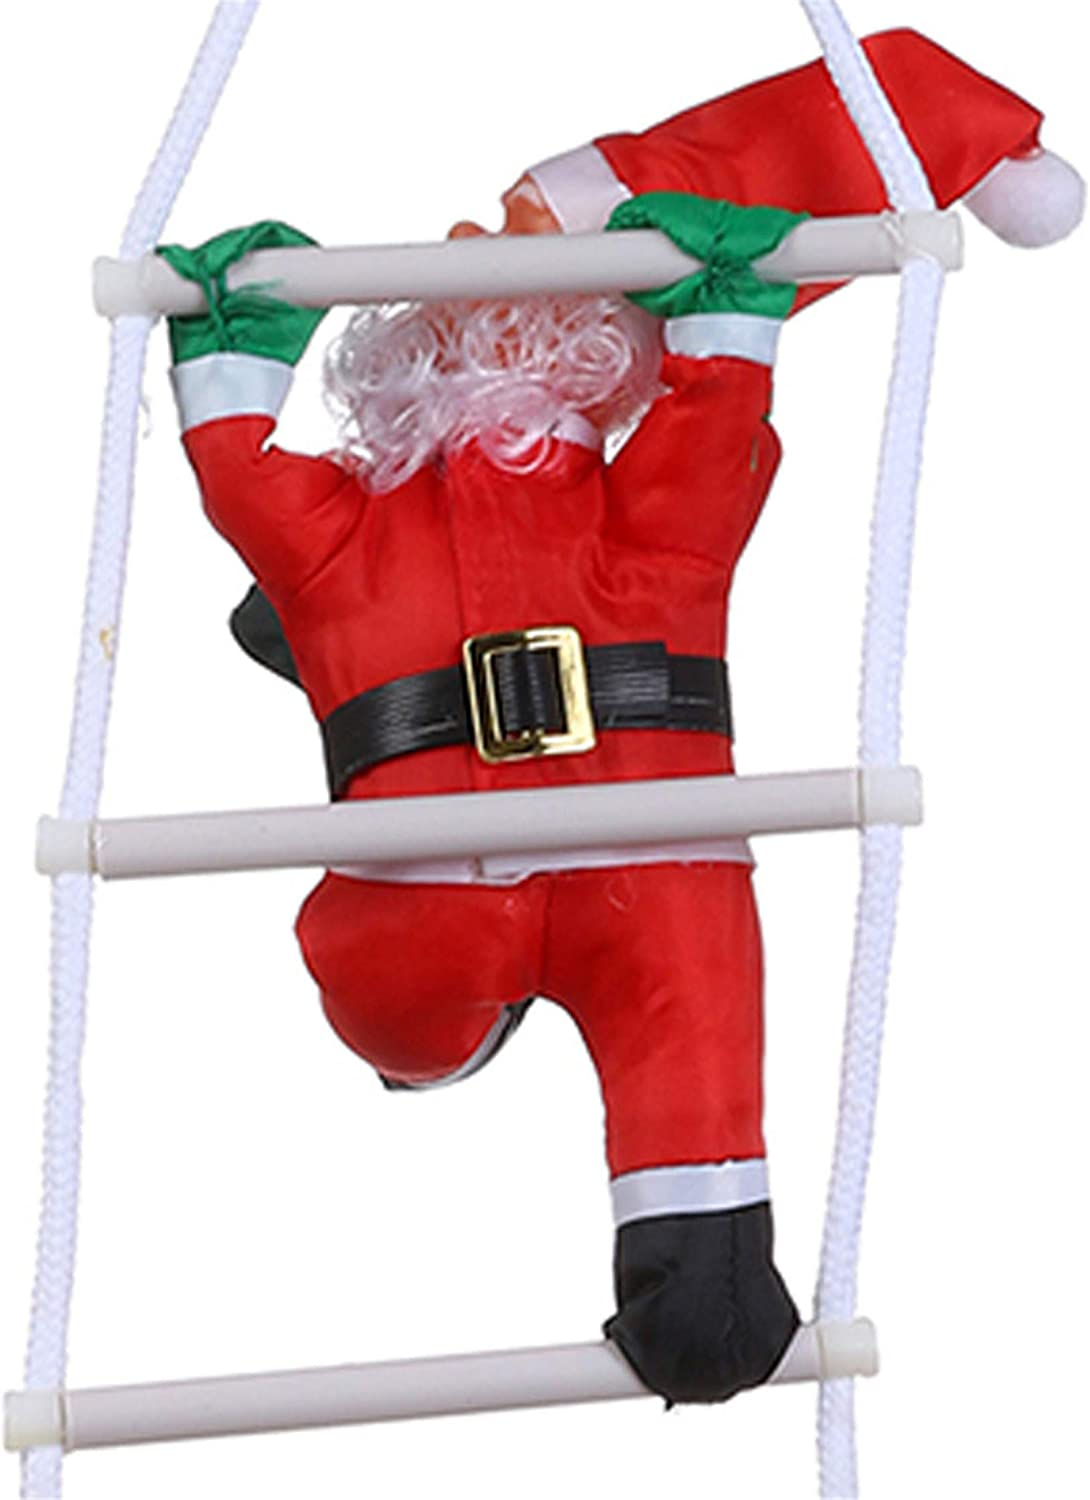 Happy Event Papá Noel en Escalera | Decoración navideña | Distressed Dekor | Santa Claus on Ladder Christmas Decoration Pendant Hanging Decor, Rojo, B (2 Santa Claus): Amazon.es: Juguetes y juegos